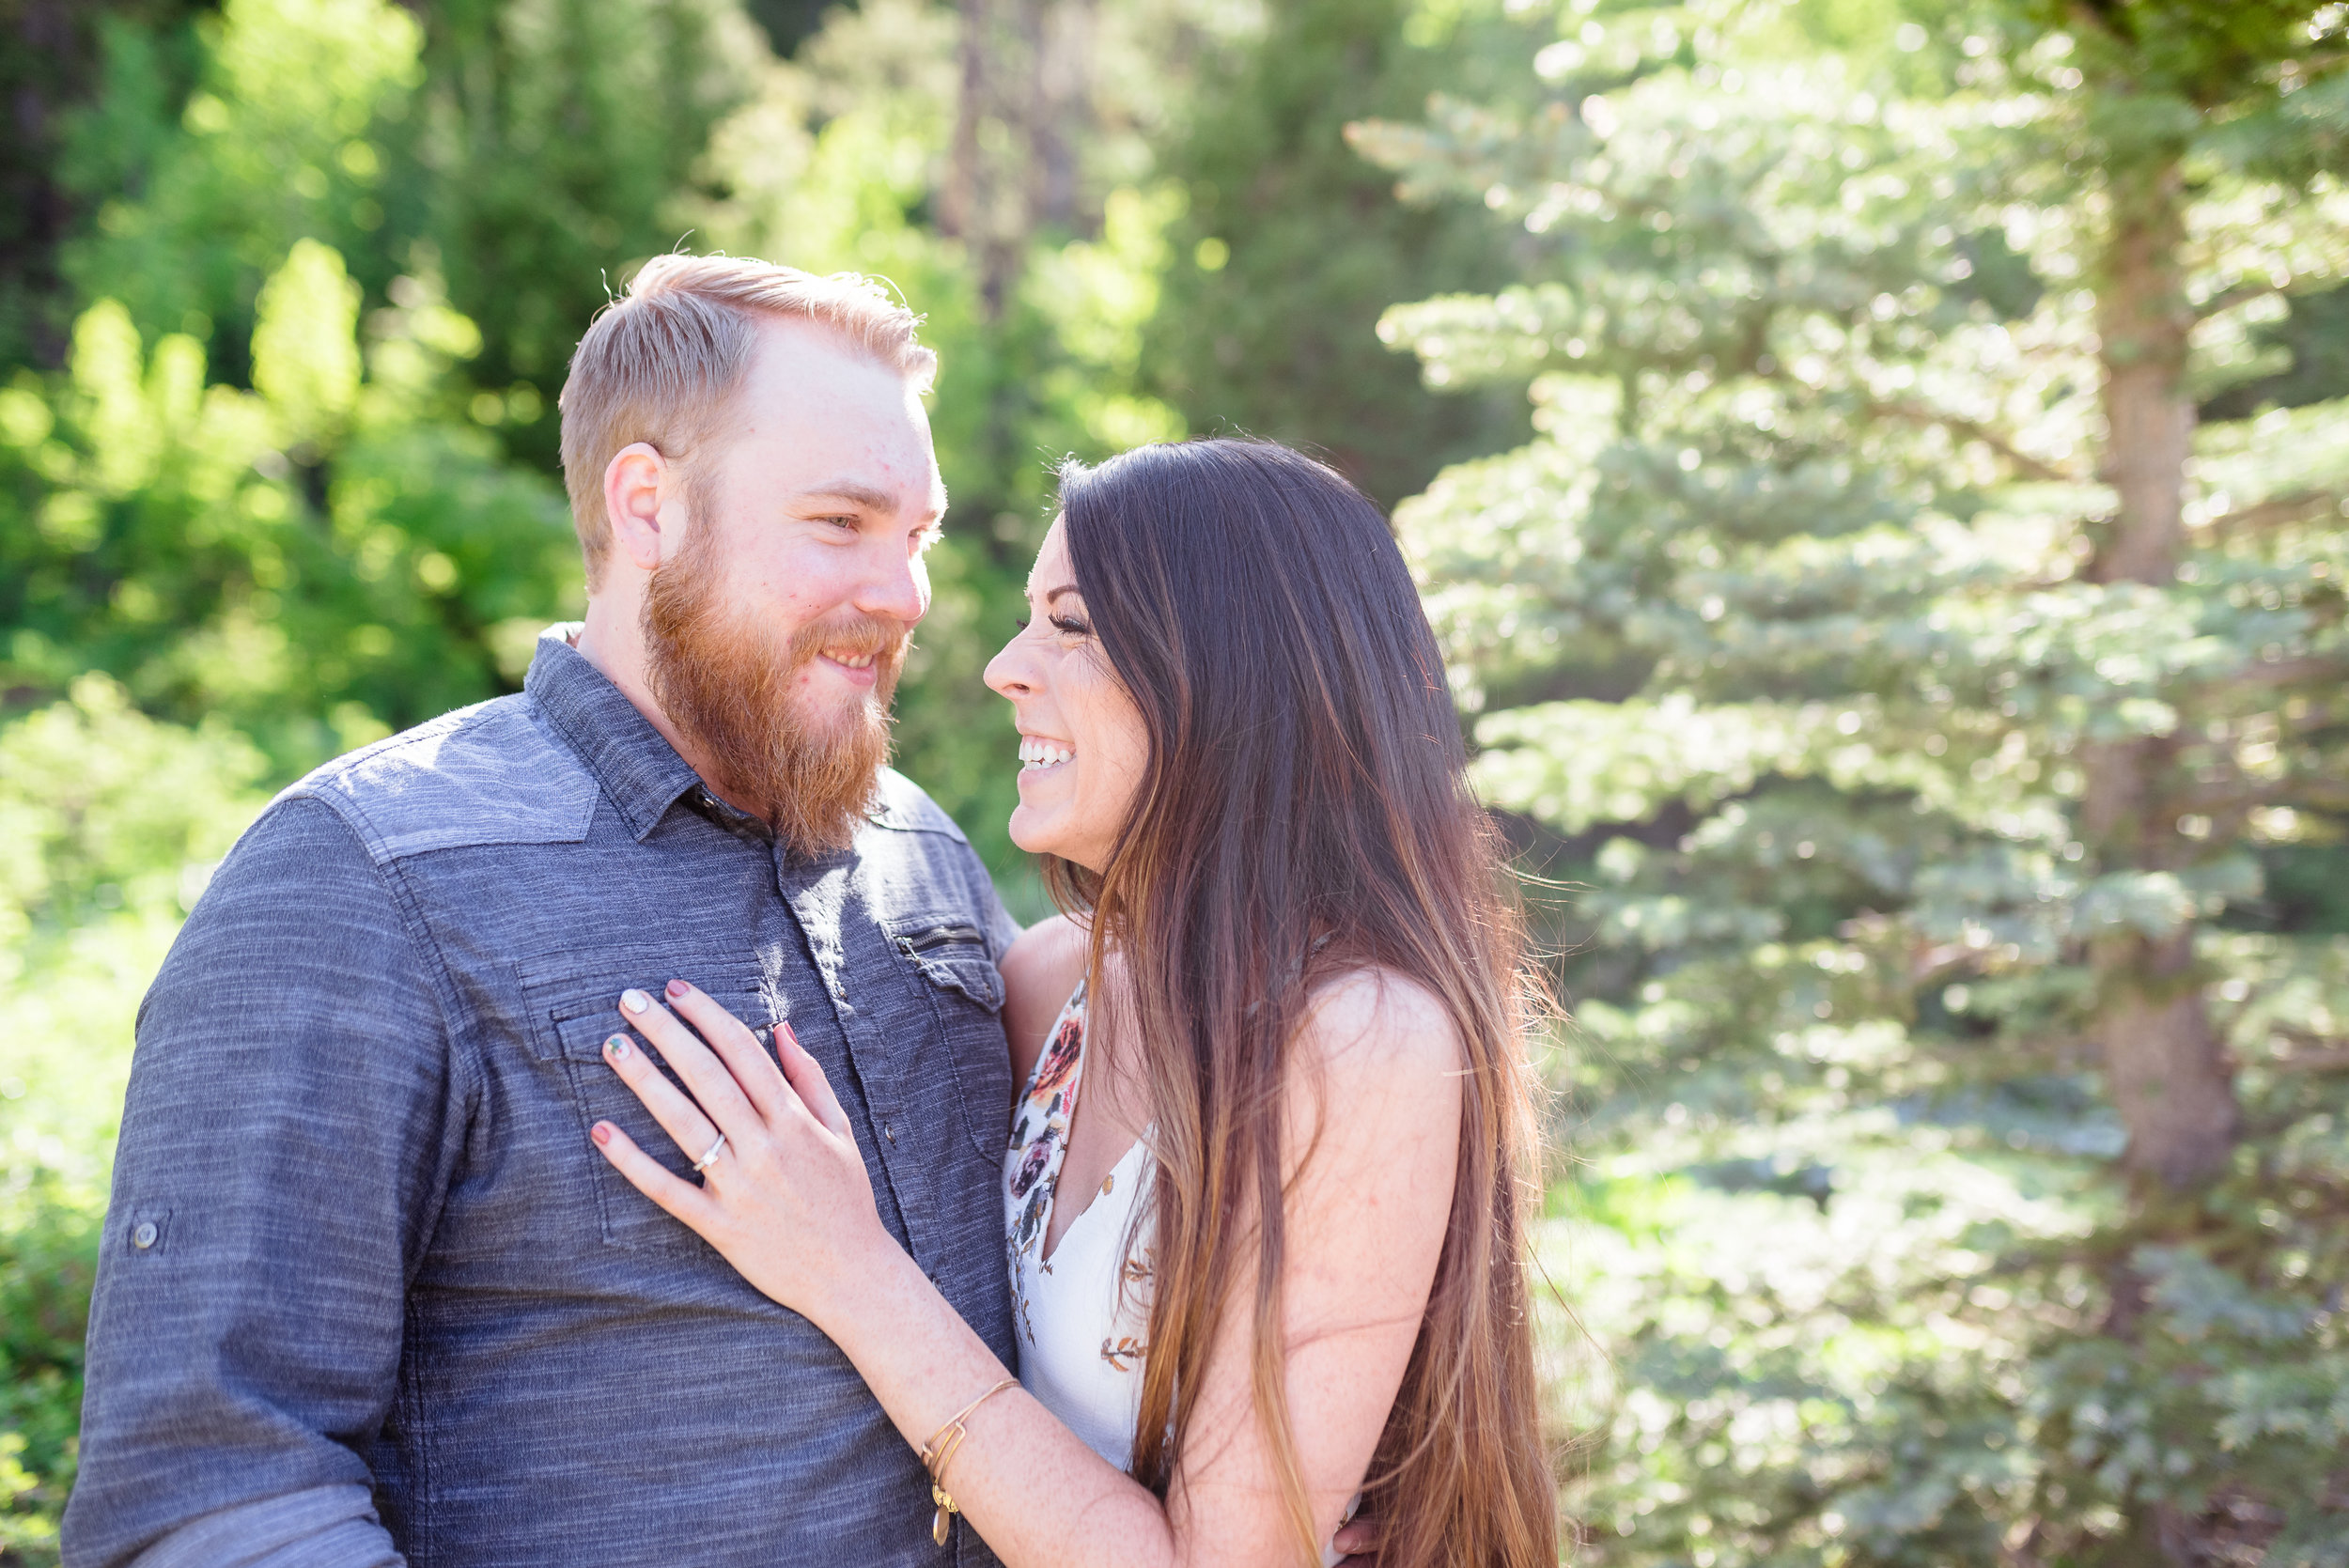 Always laughing together. Never stop laughing with each other. Morning engagement session in the Salt Lake mountains. Engagement session at Jordan Pines Campground in Big Cottonwood Canyon.